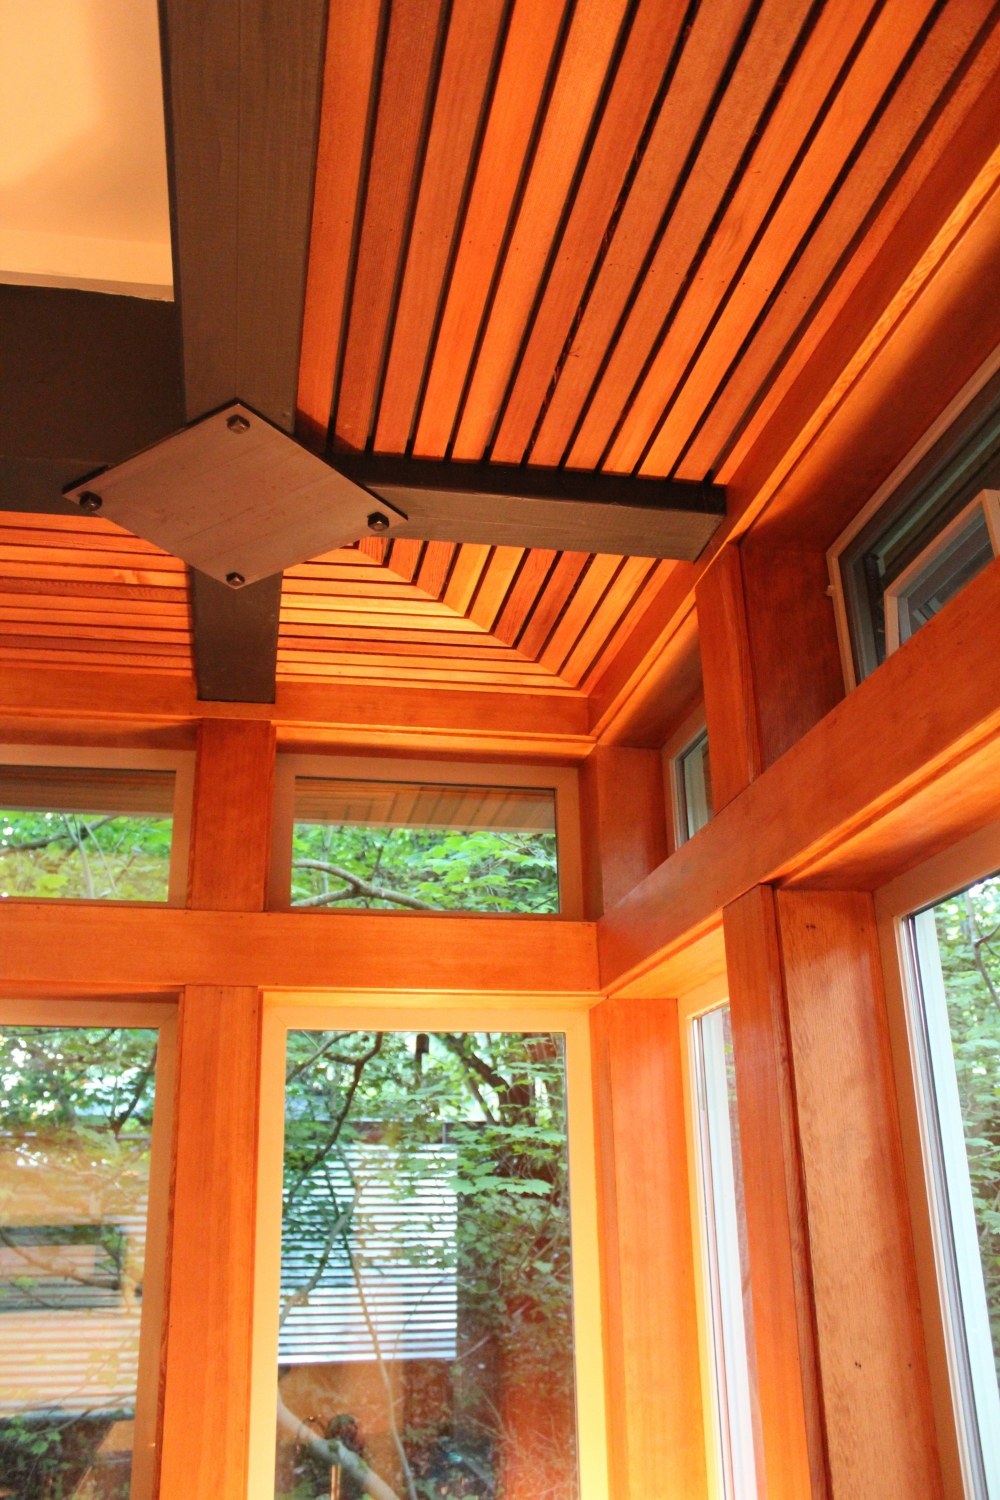 Detail of fir window casework and ceiling soffit.